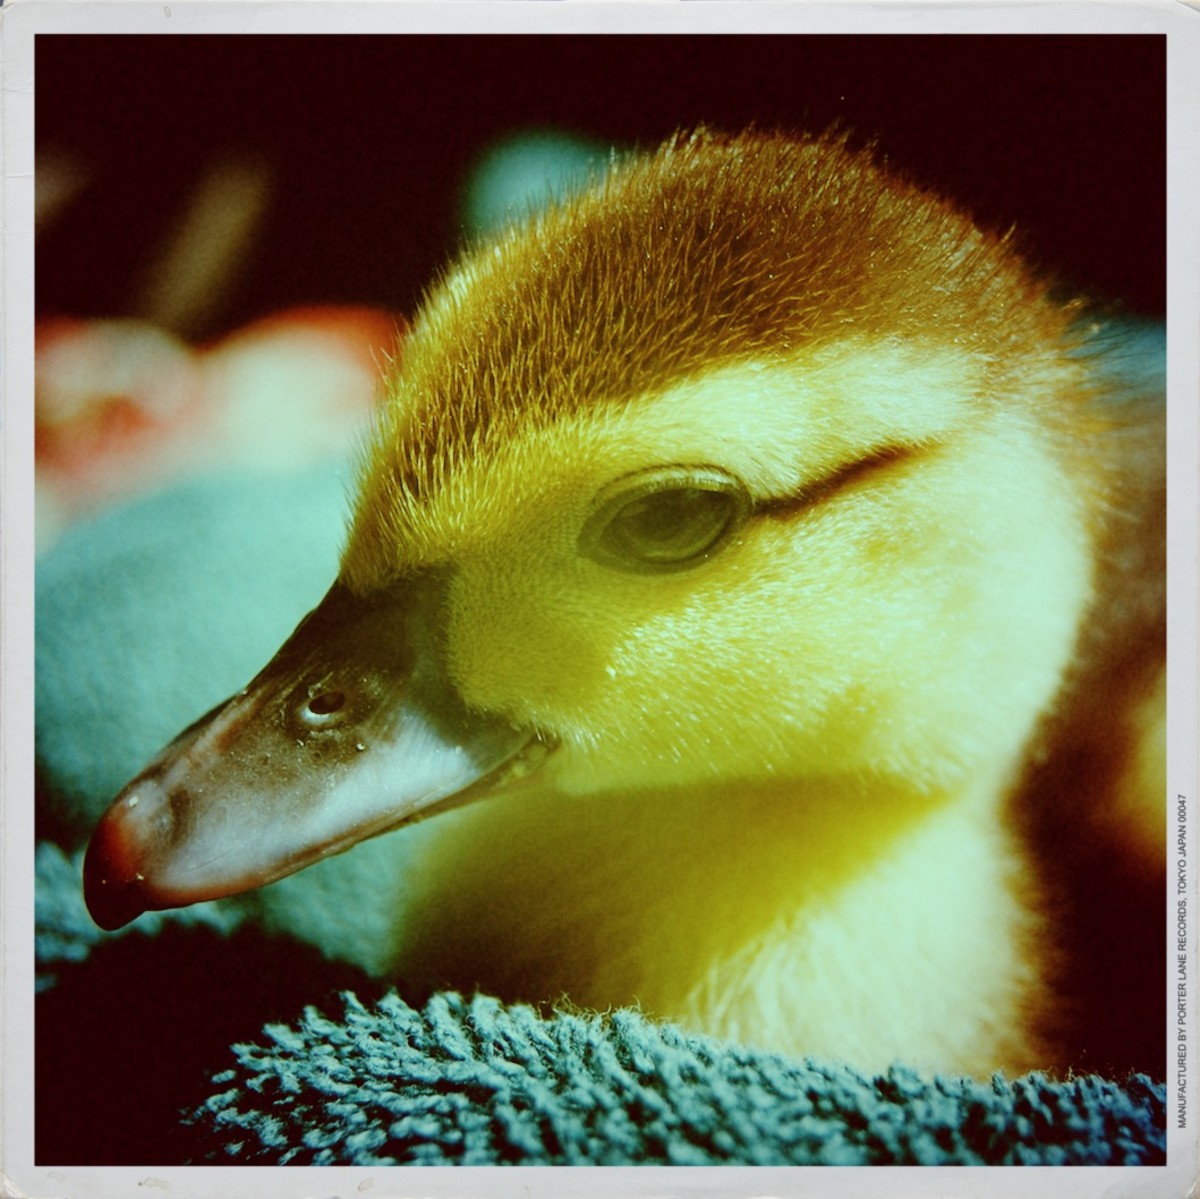 Sao-Ree, an imprinted muscovy duckling who grew up to be a blue drake. (Photo by Shanti Perez)